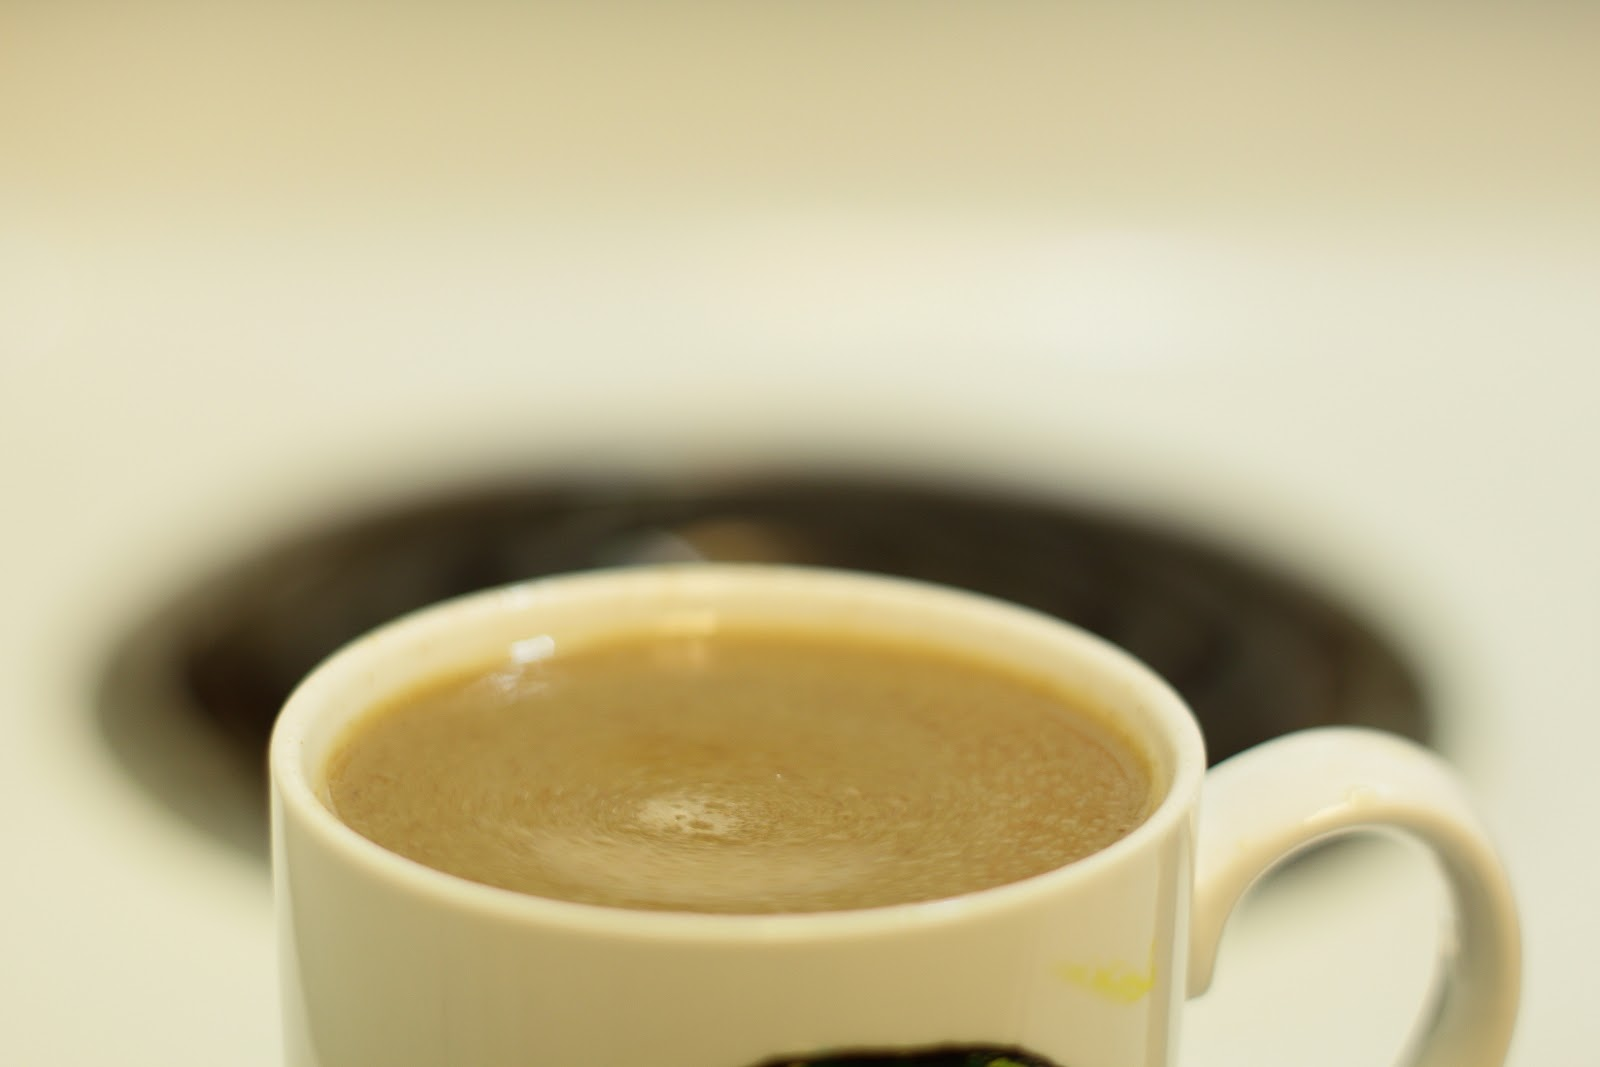 coffee, A Day in the Life, Photo-A-Day April 2015, Day 7, by Lisa Miller